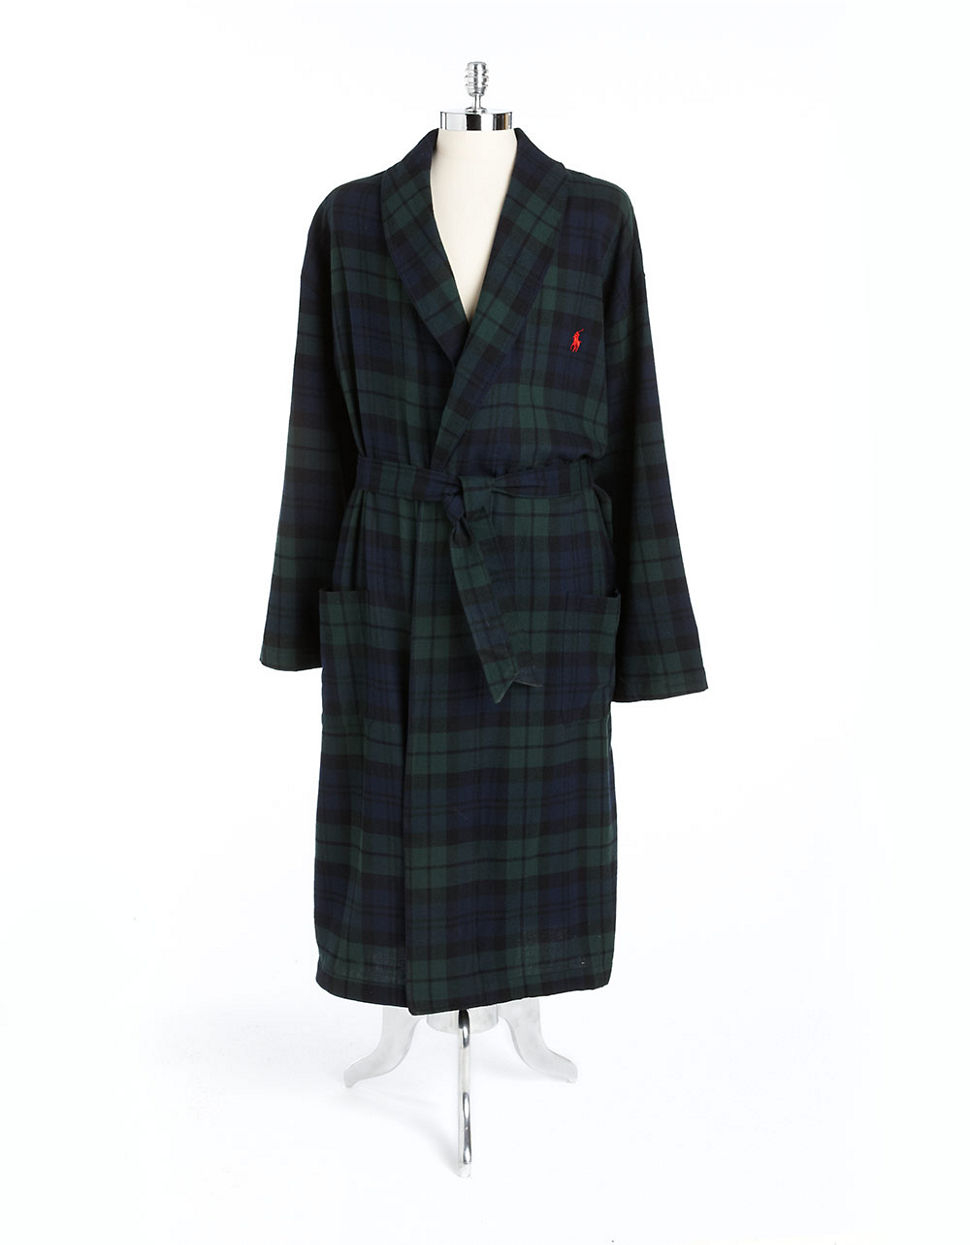 polo ralph lauren belted plaid cotton robe in green for men green blue lyst. Black Bedroom Furniture Sets. Home Design Ideas